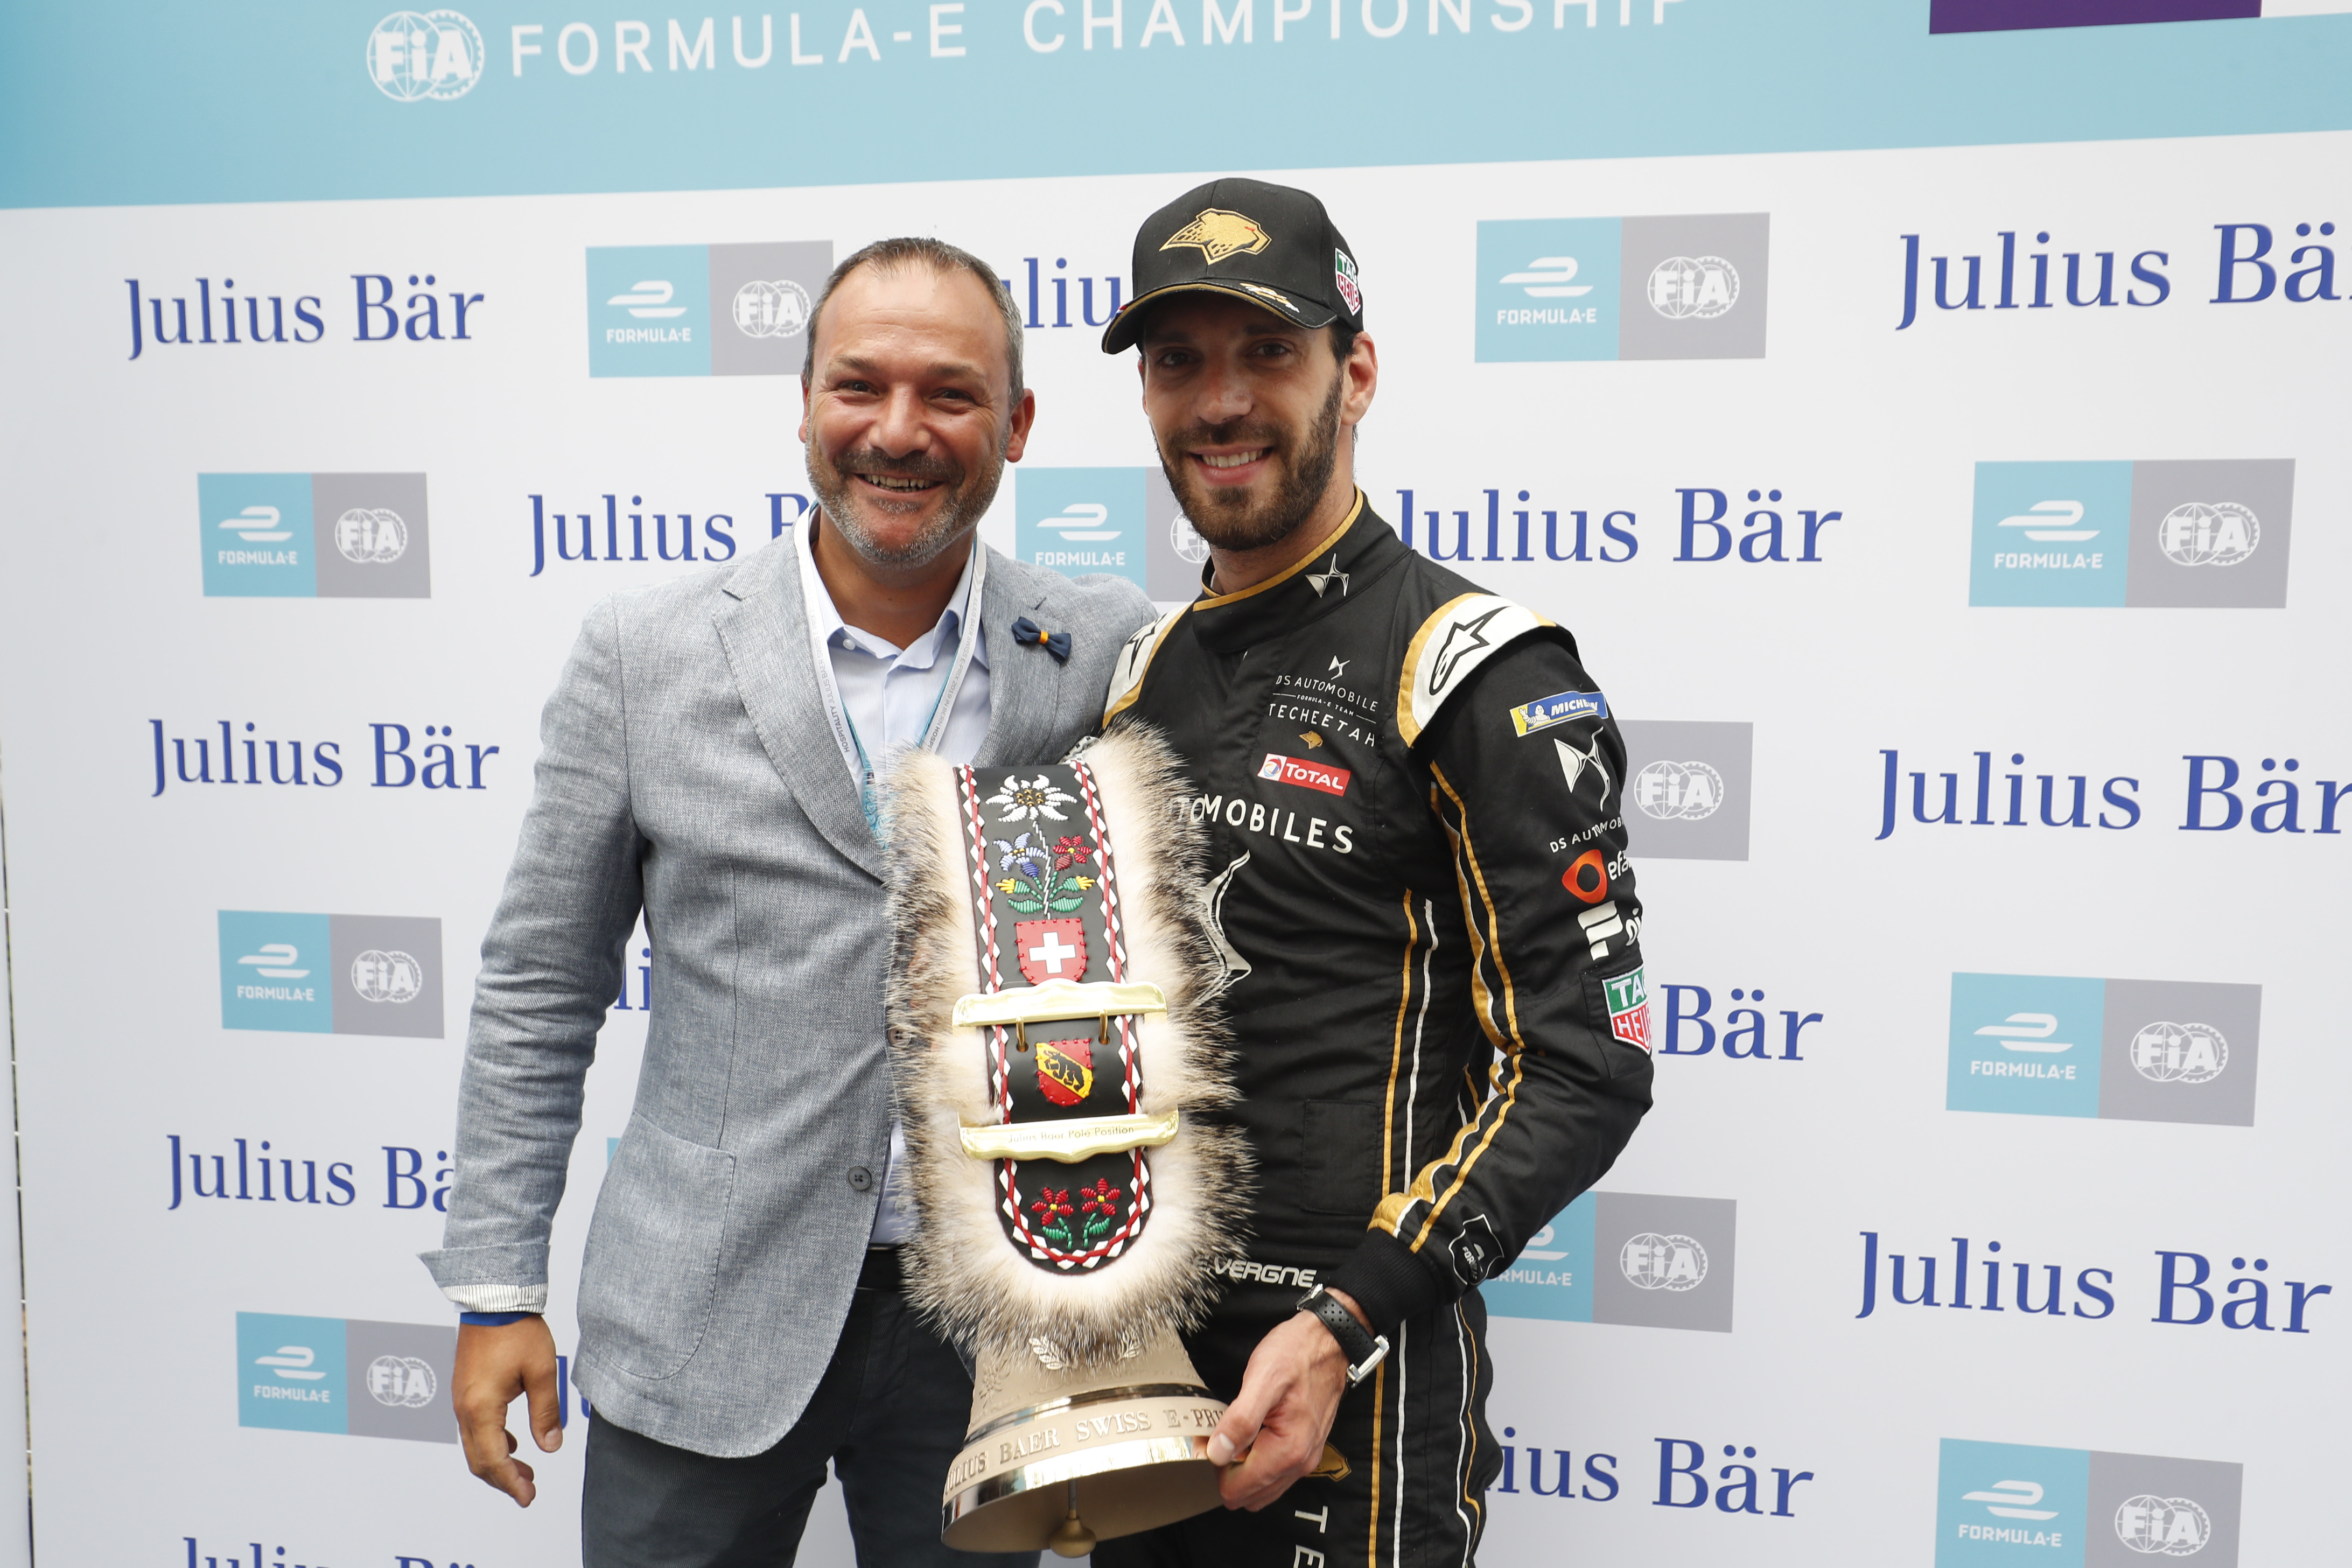 Jean-Eric Vergne (FRA), DS TECHEETAH, receives Julius Baer pole position award